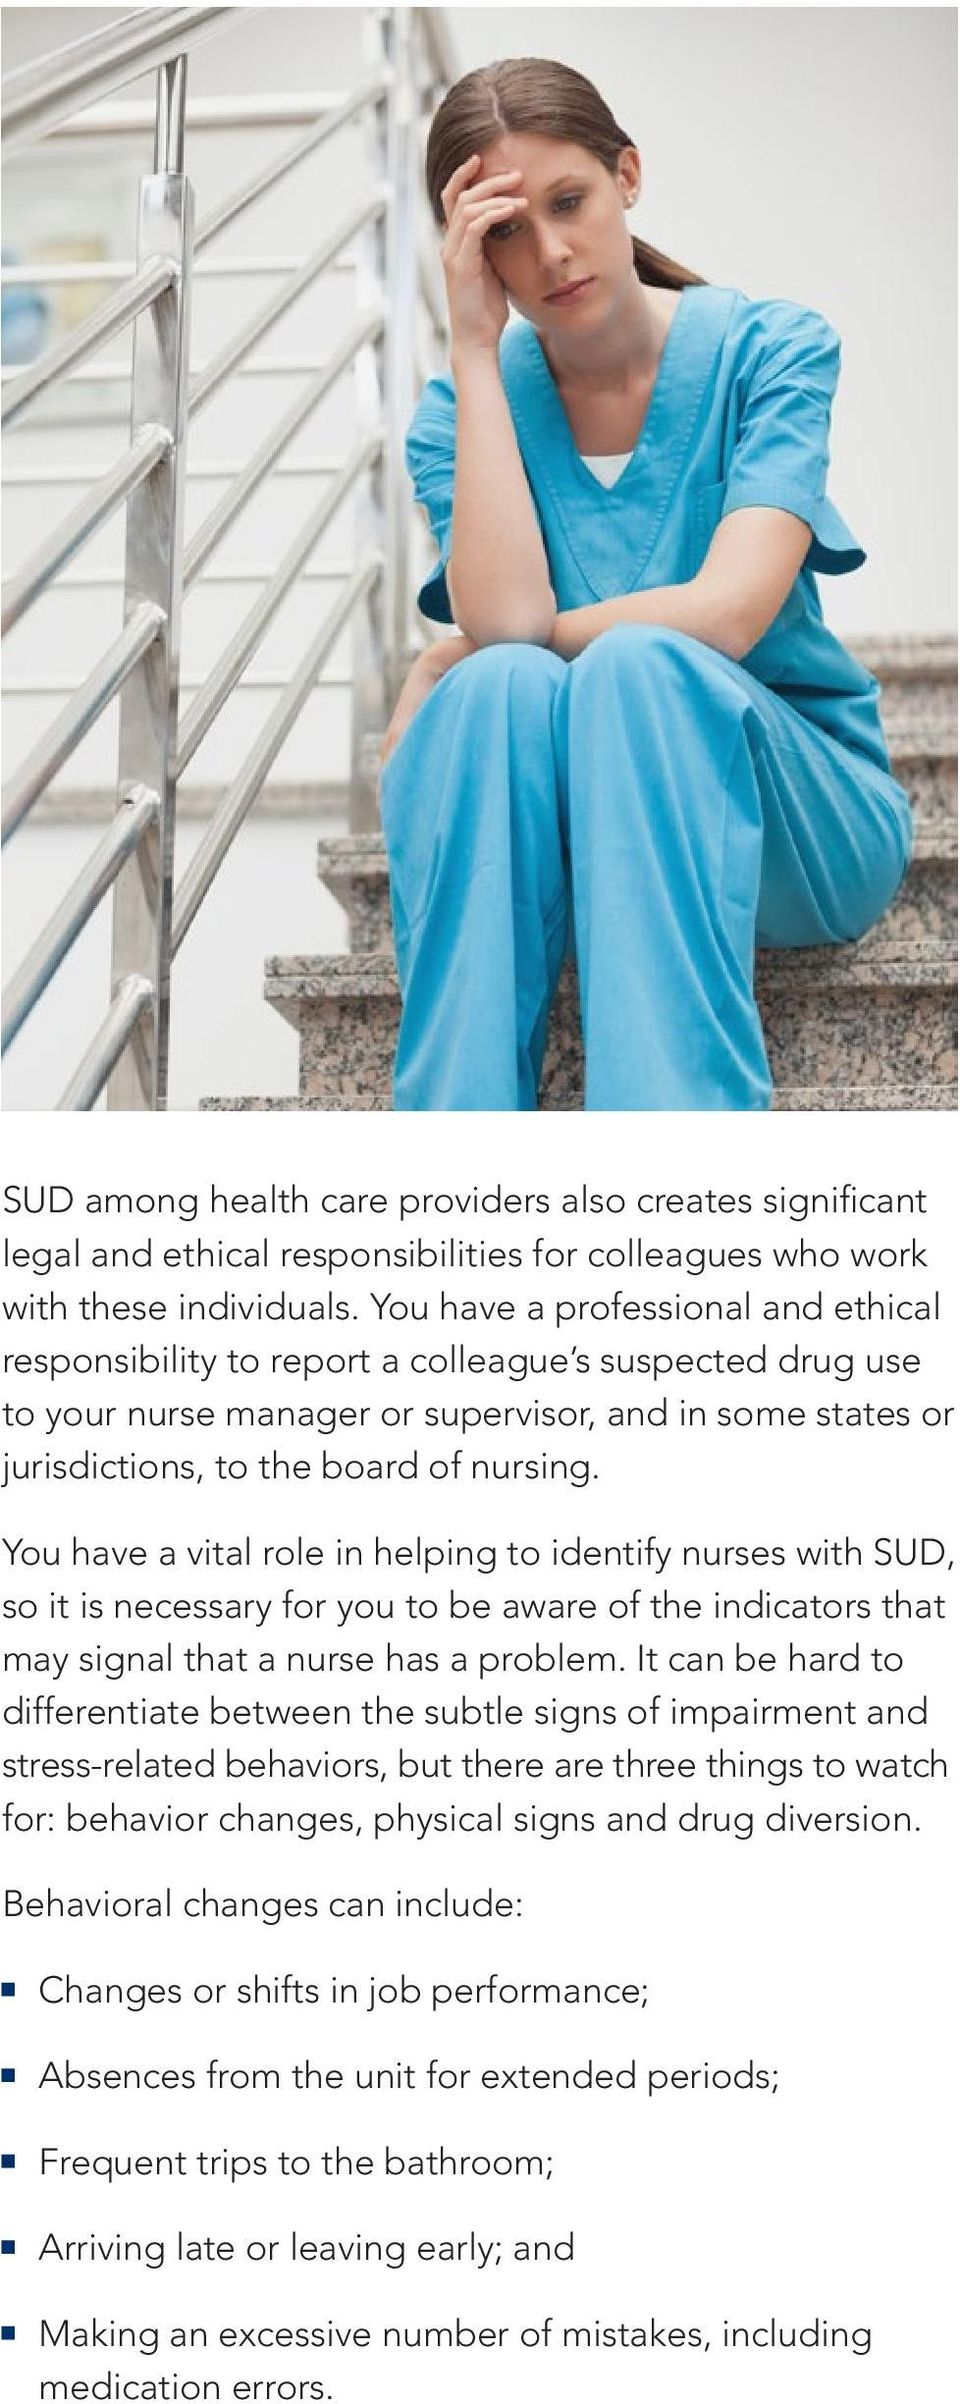 You have a vital role in helping to identify nurses with SUD, so it is necessary for you to be aware of the indicators that may signal that a nurse has a problem.